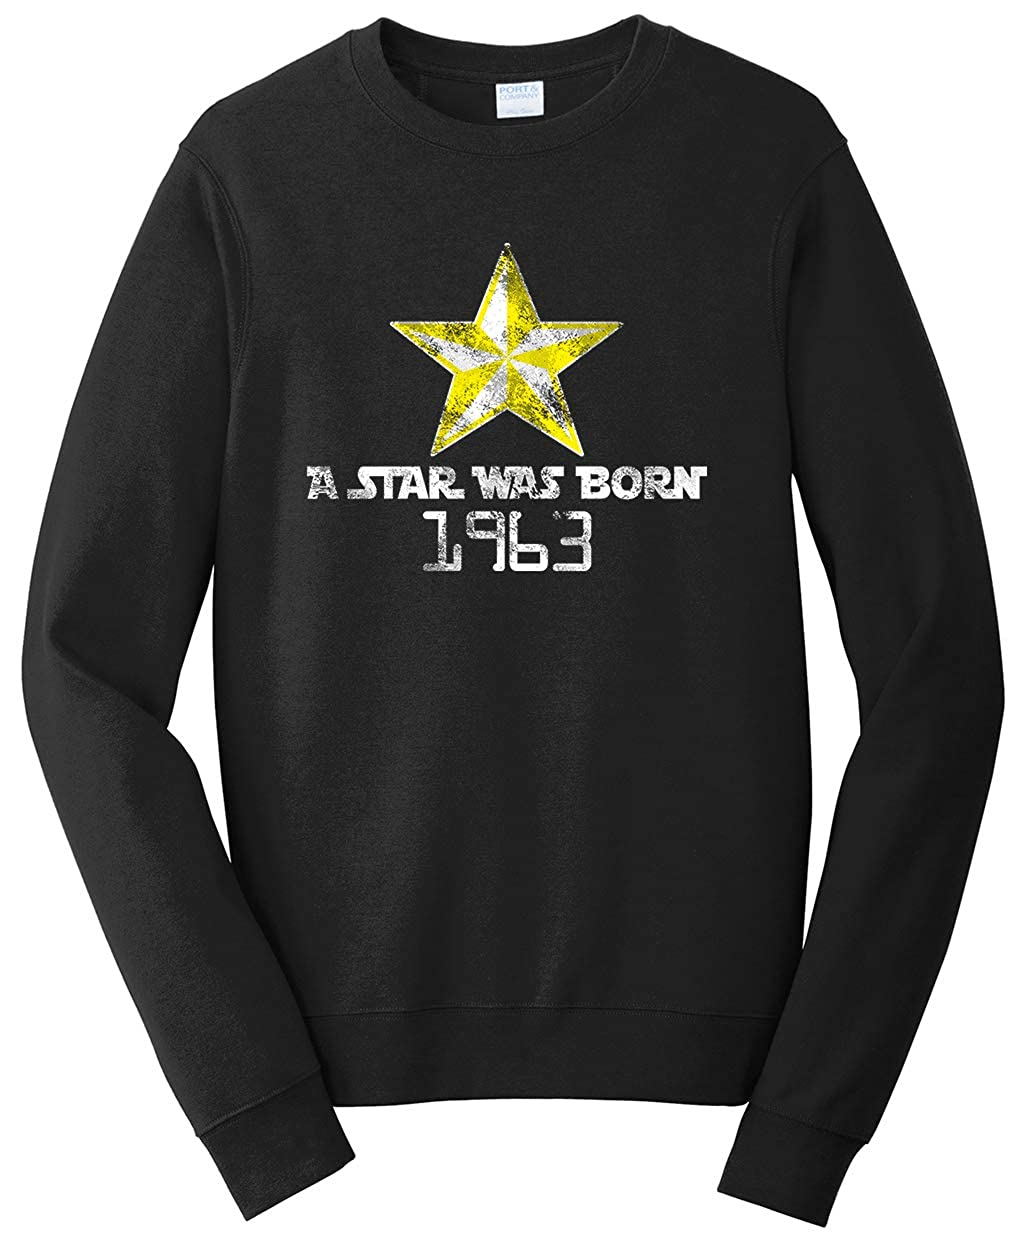 Tenacitee Unisex A Star was Born 1963 Sweatshirt